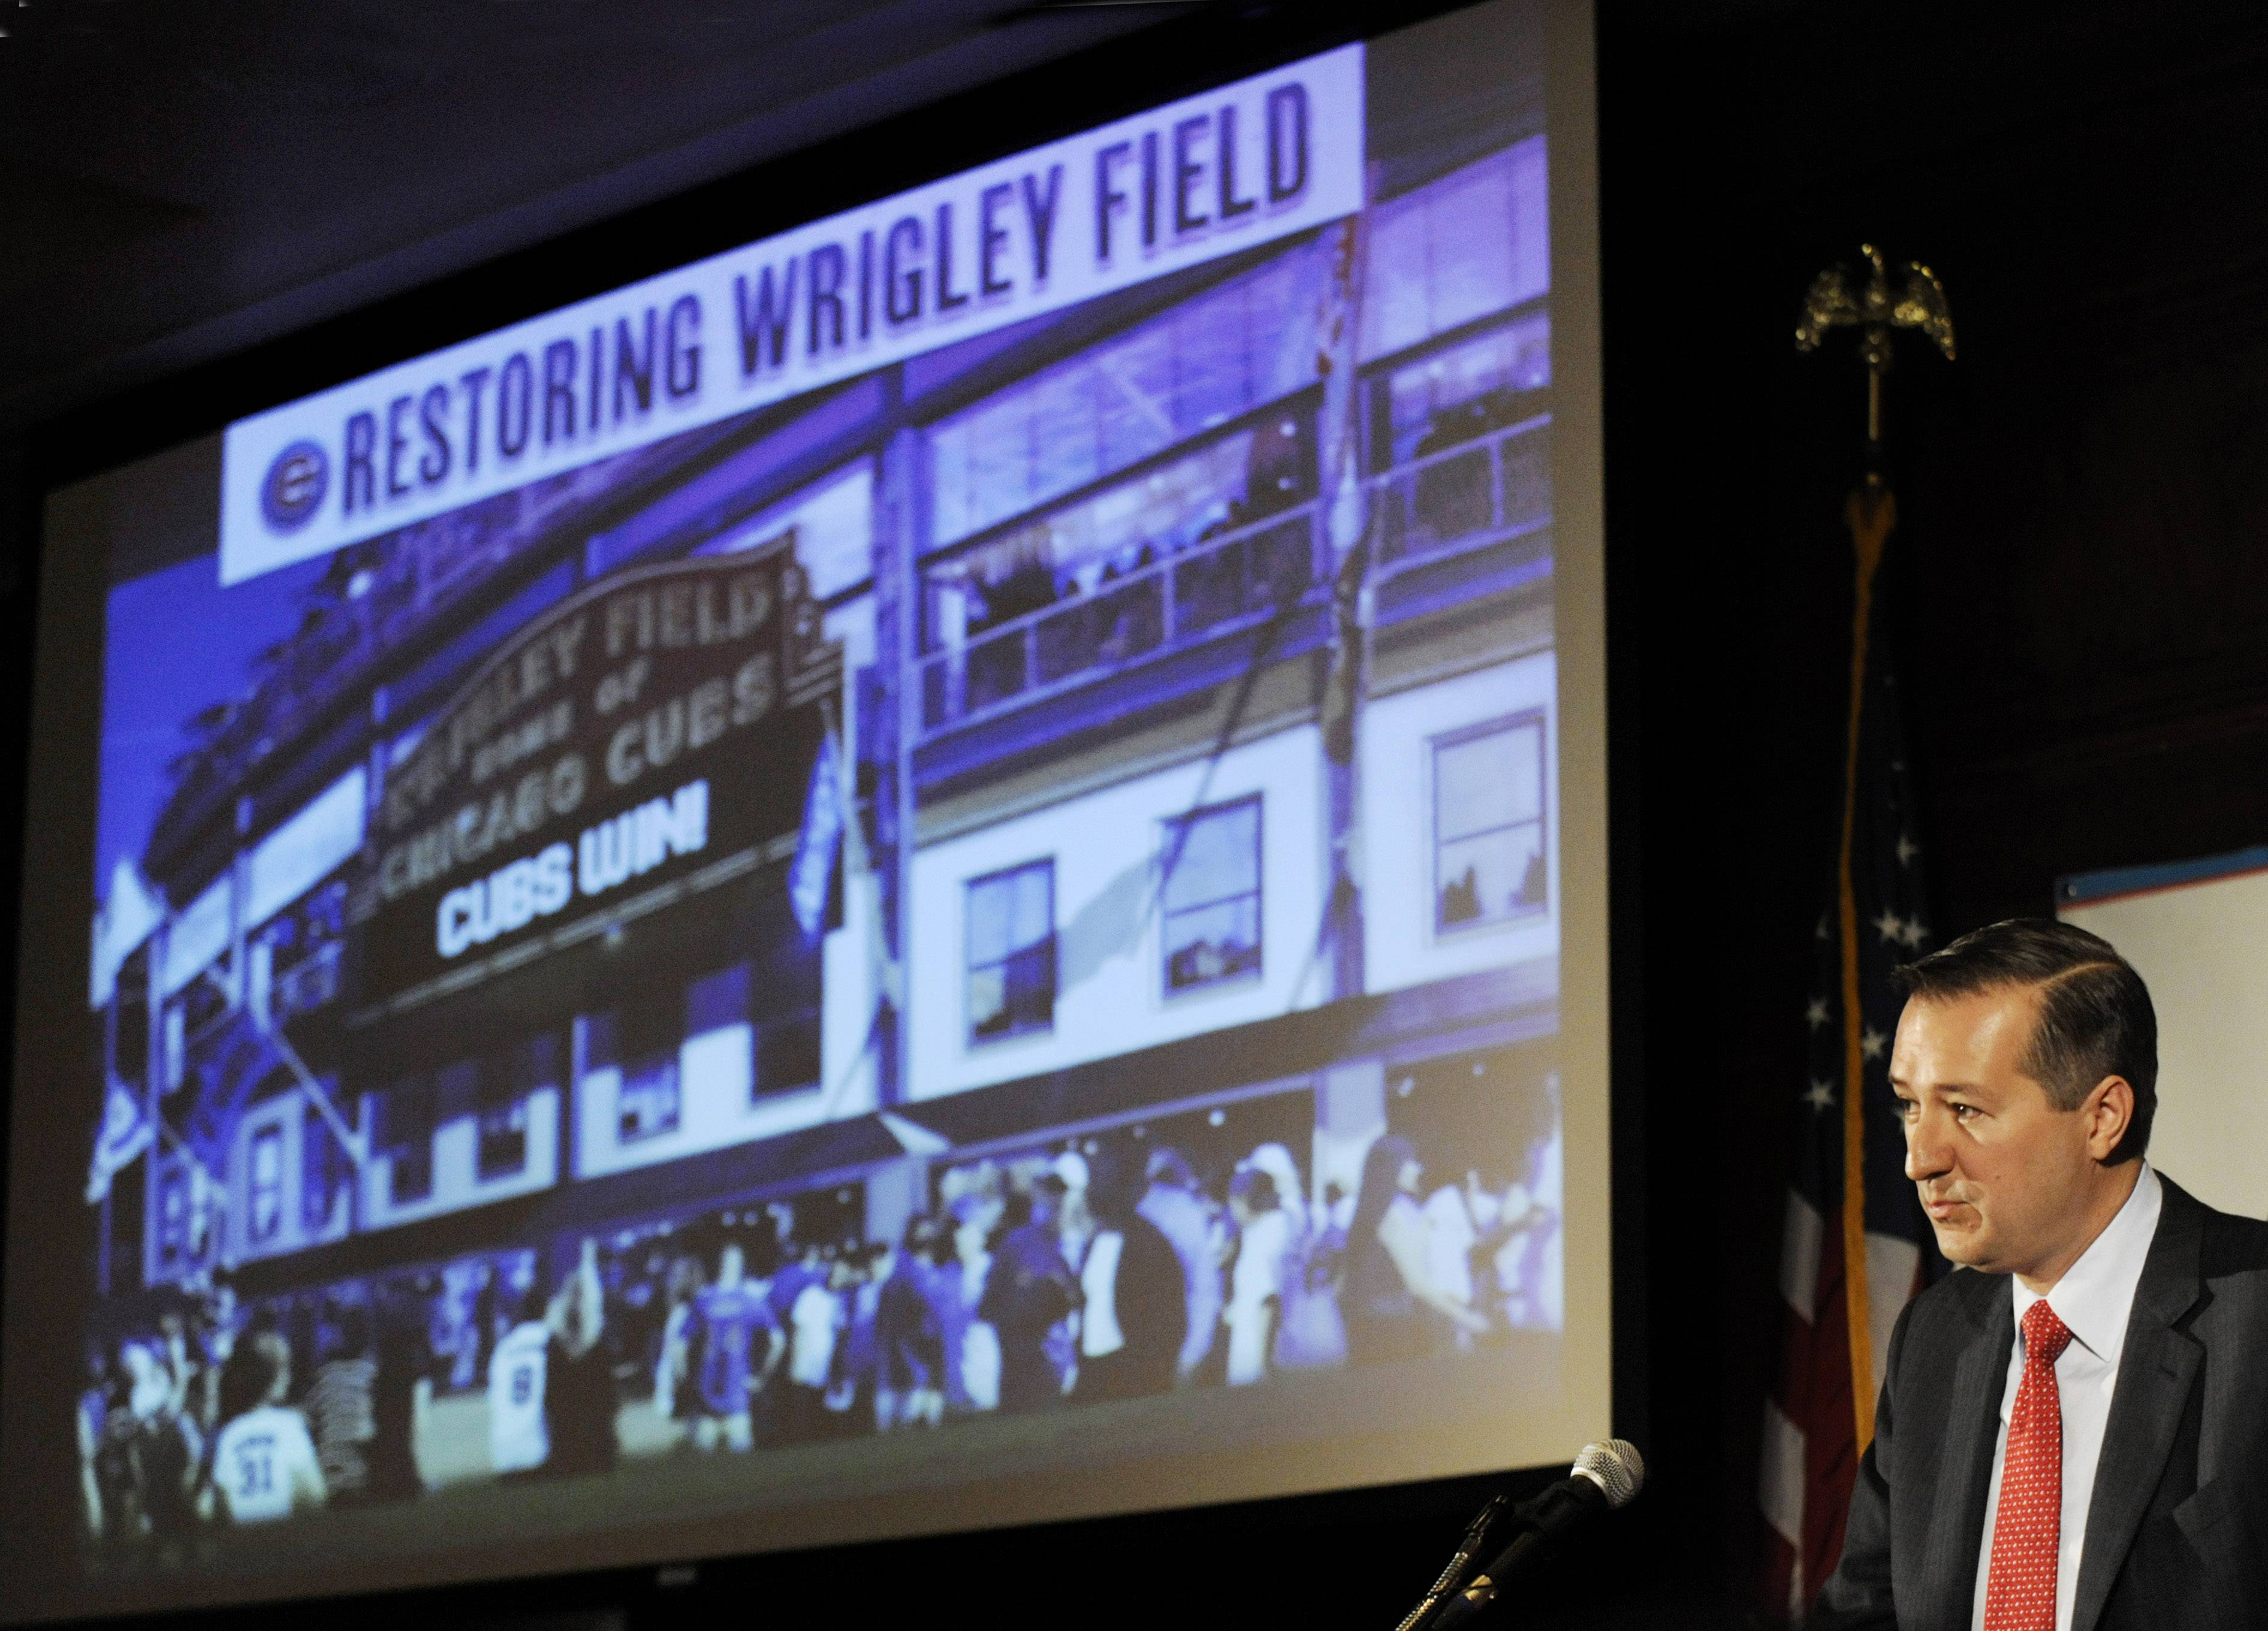 Cubs Chairman Tom Ricketts speaks last May about proposed renovations at Wrigley Field. The Ricketts family, which purchased a 95 percent ownership stake in the team in 2009, has seen its $300 million stadium renovation stall as talks continue with neighborhood rooftop owners.